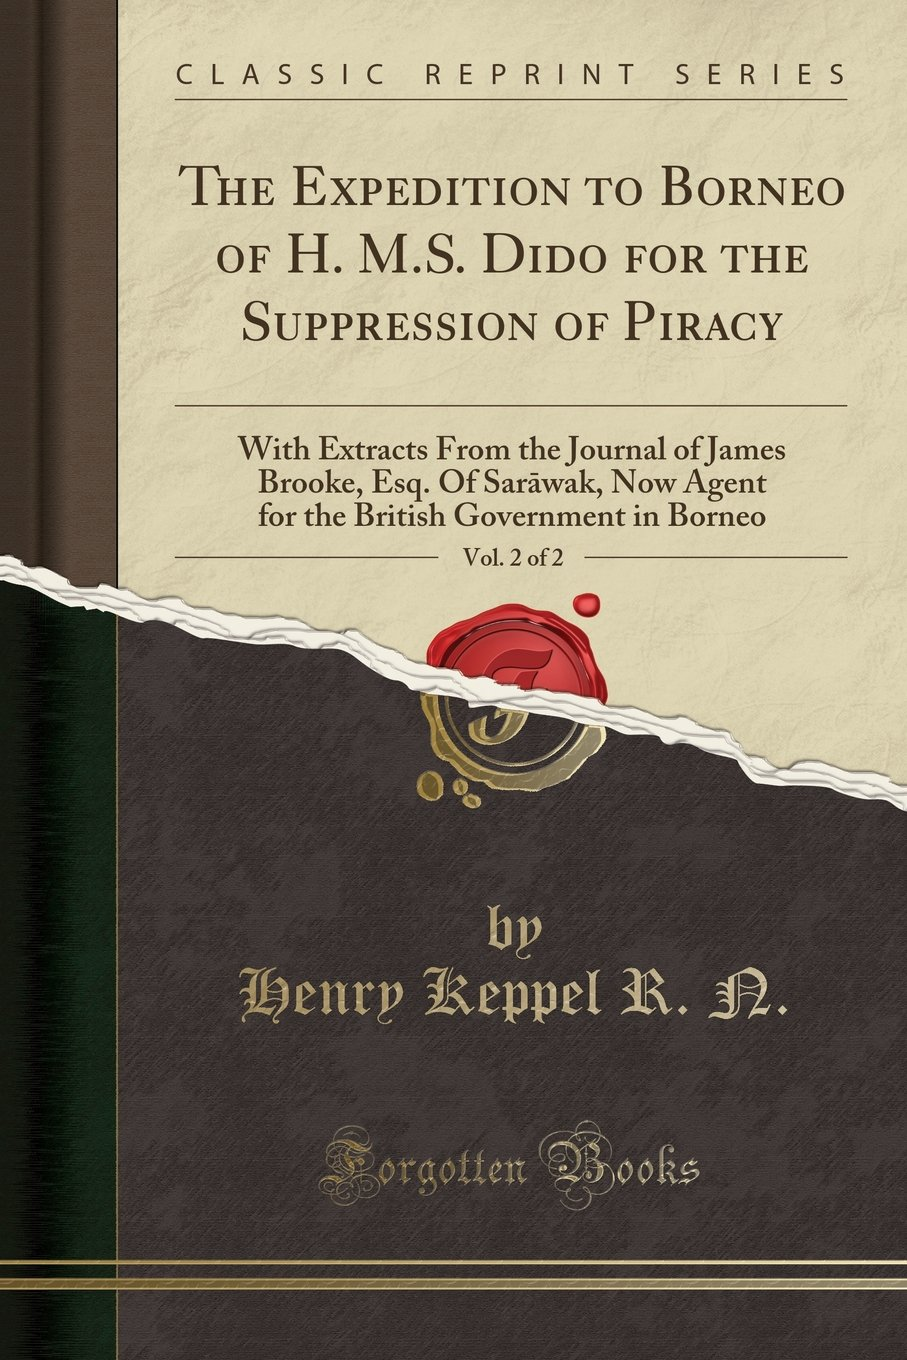 The Expedition to Borneo of H. M.S. Dido for the Suppression of Piracy, Vol. 2 of 2: With Extracts From the Journal of James Brooke, Esq. Of Sarāwak. Government in Borneo (Classic Reprint)